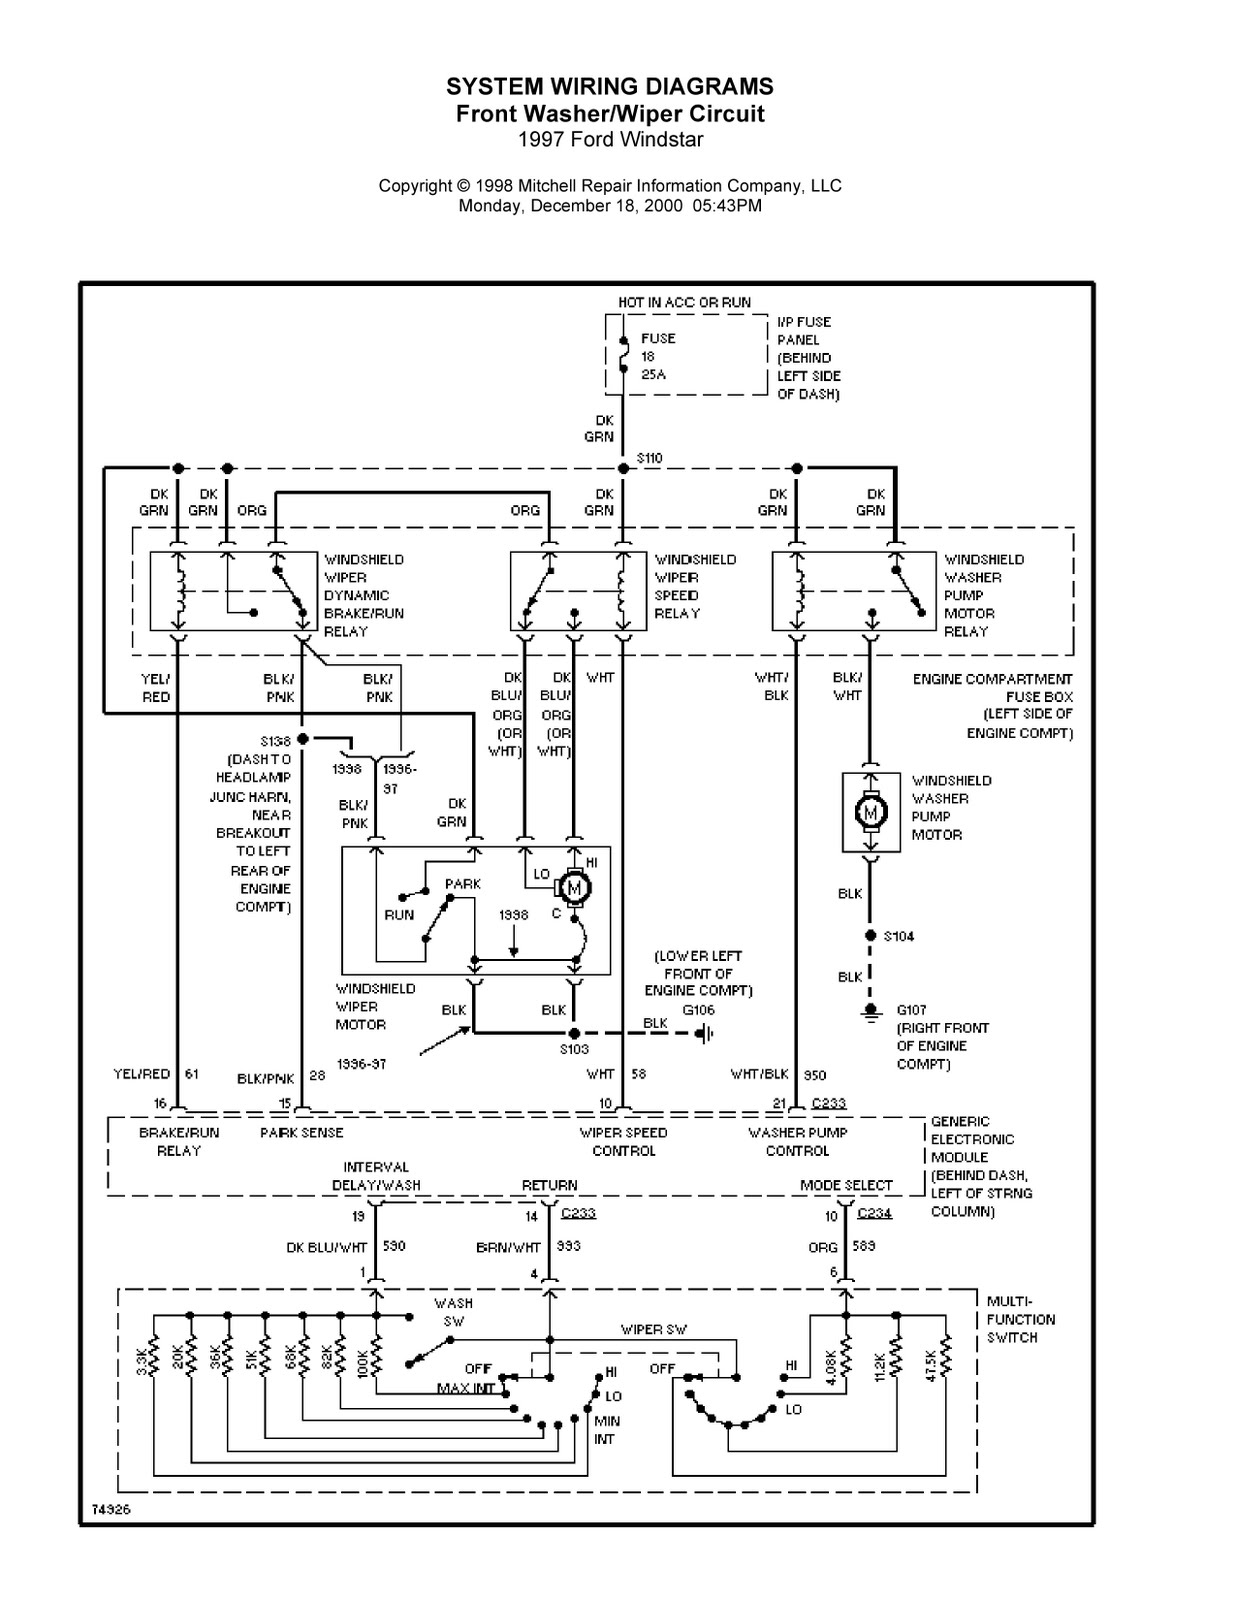 hight resolution of 2002 windstar mirror wiring diagram wiring diagrams rh gregorywein co ford ranger 3 0 wiring